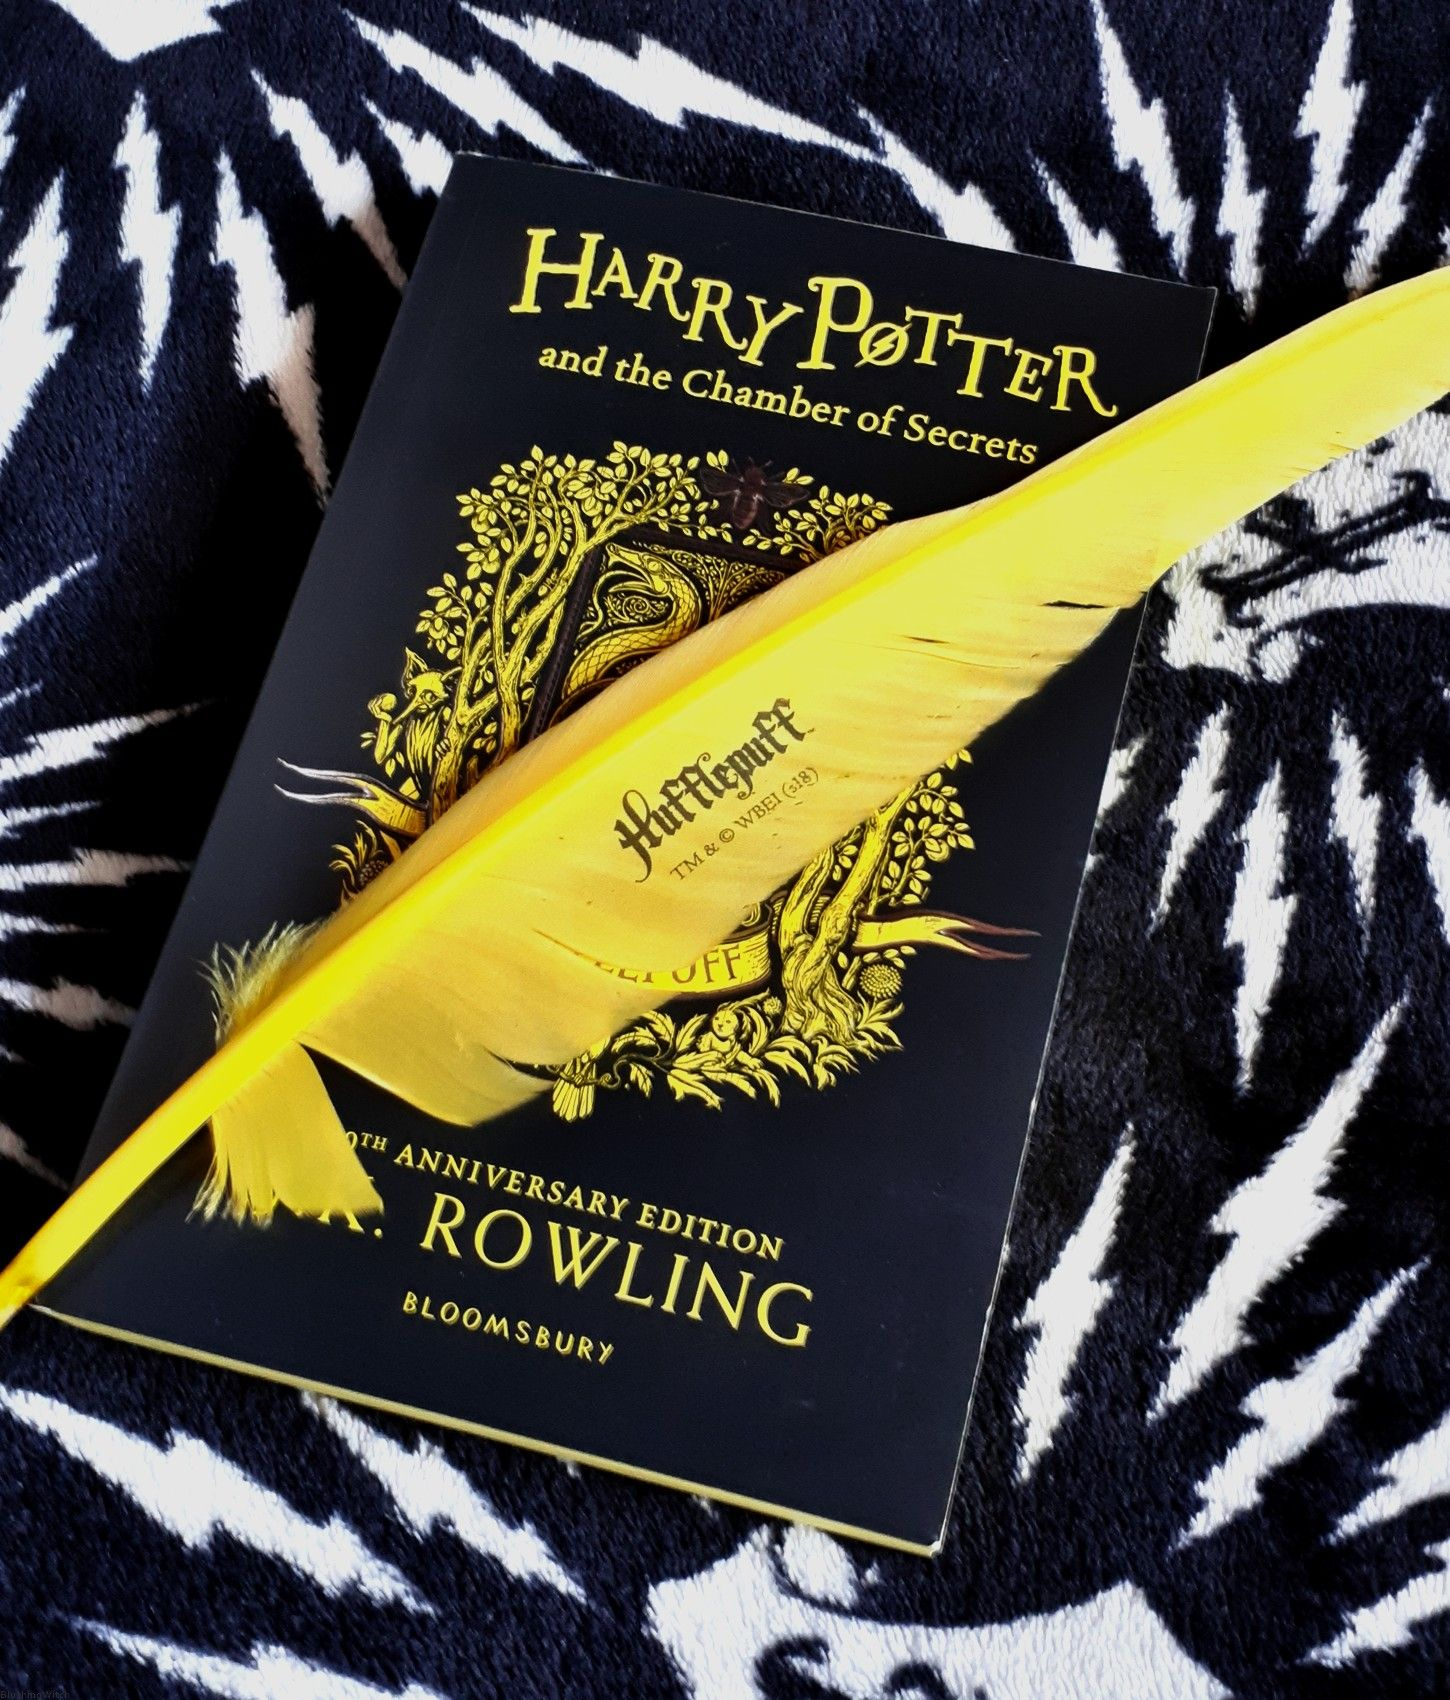 harry potter and the chamber of secrets hufflepuff edition